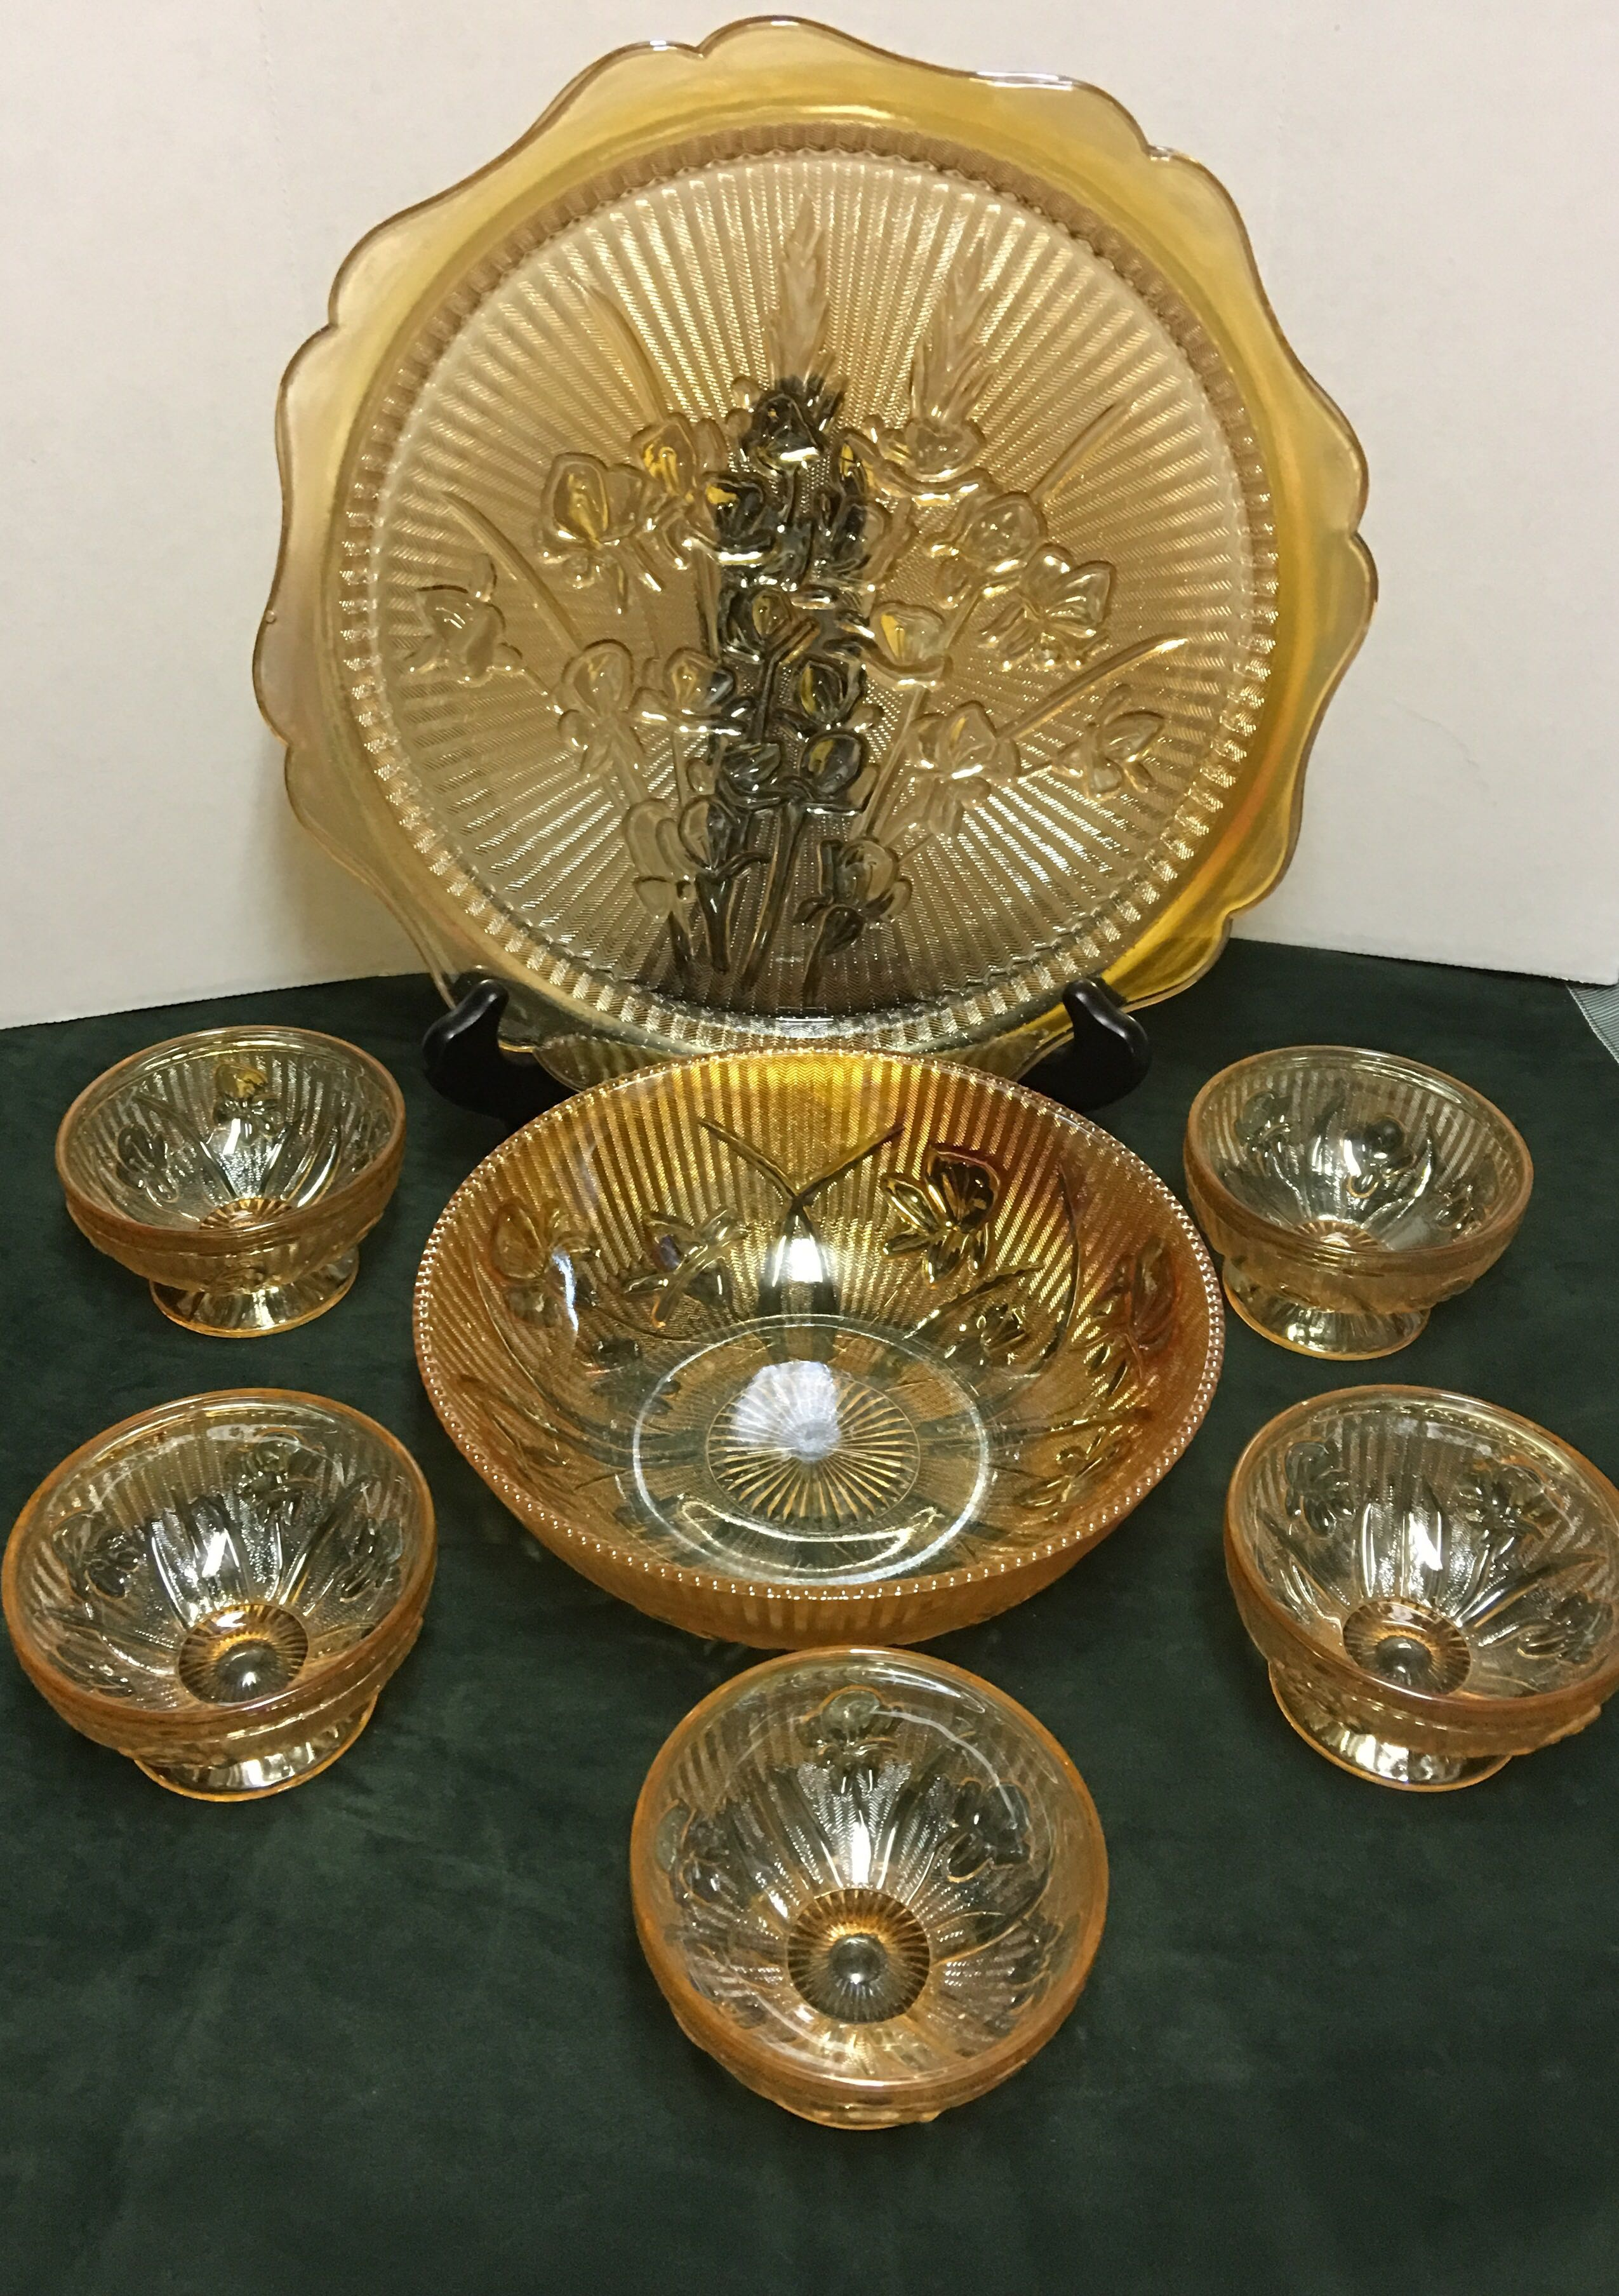 Vintage Jeanette Glass Company - Marigold Iris and Herringbone Embossed Carnival Glass